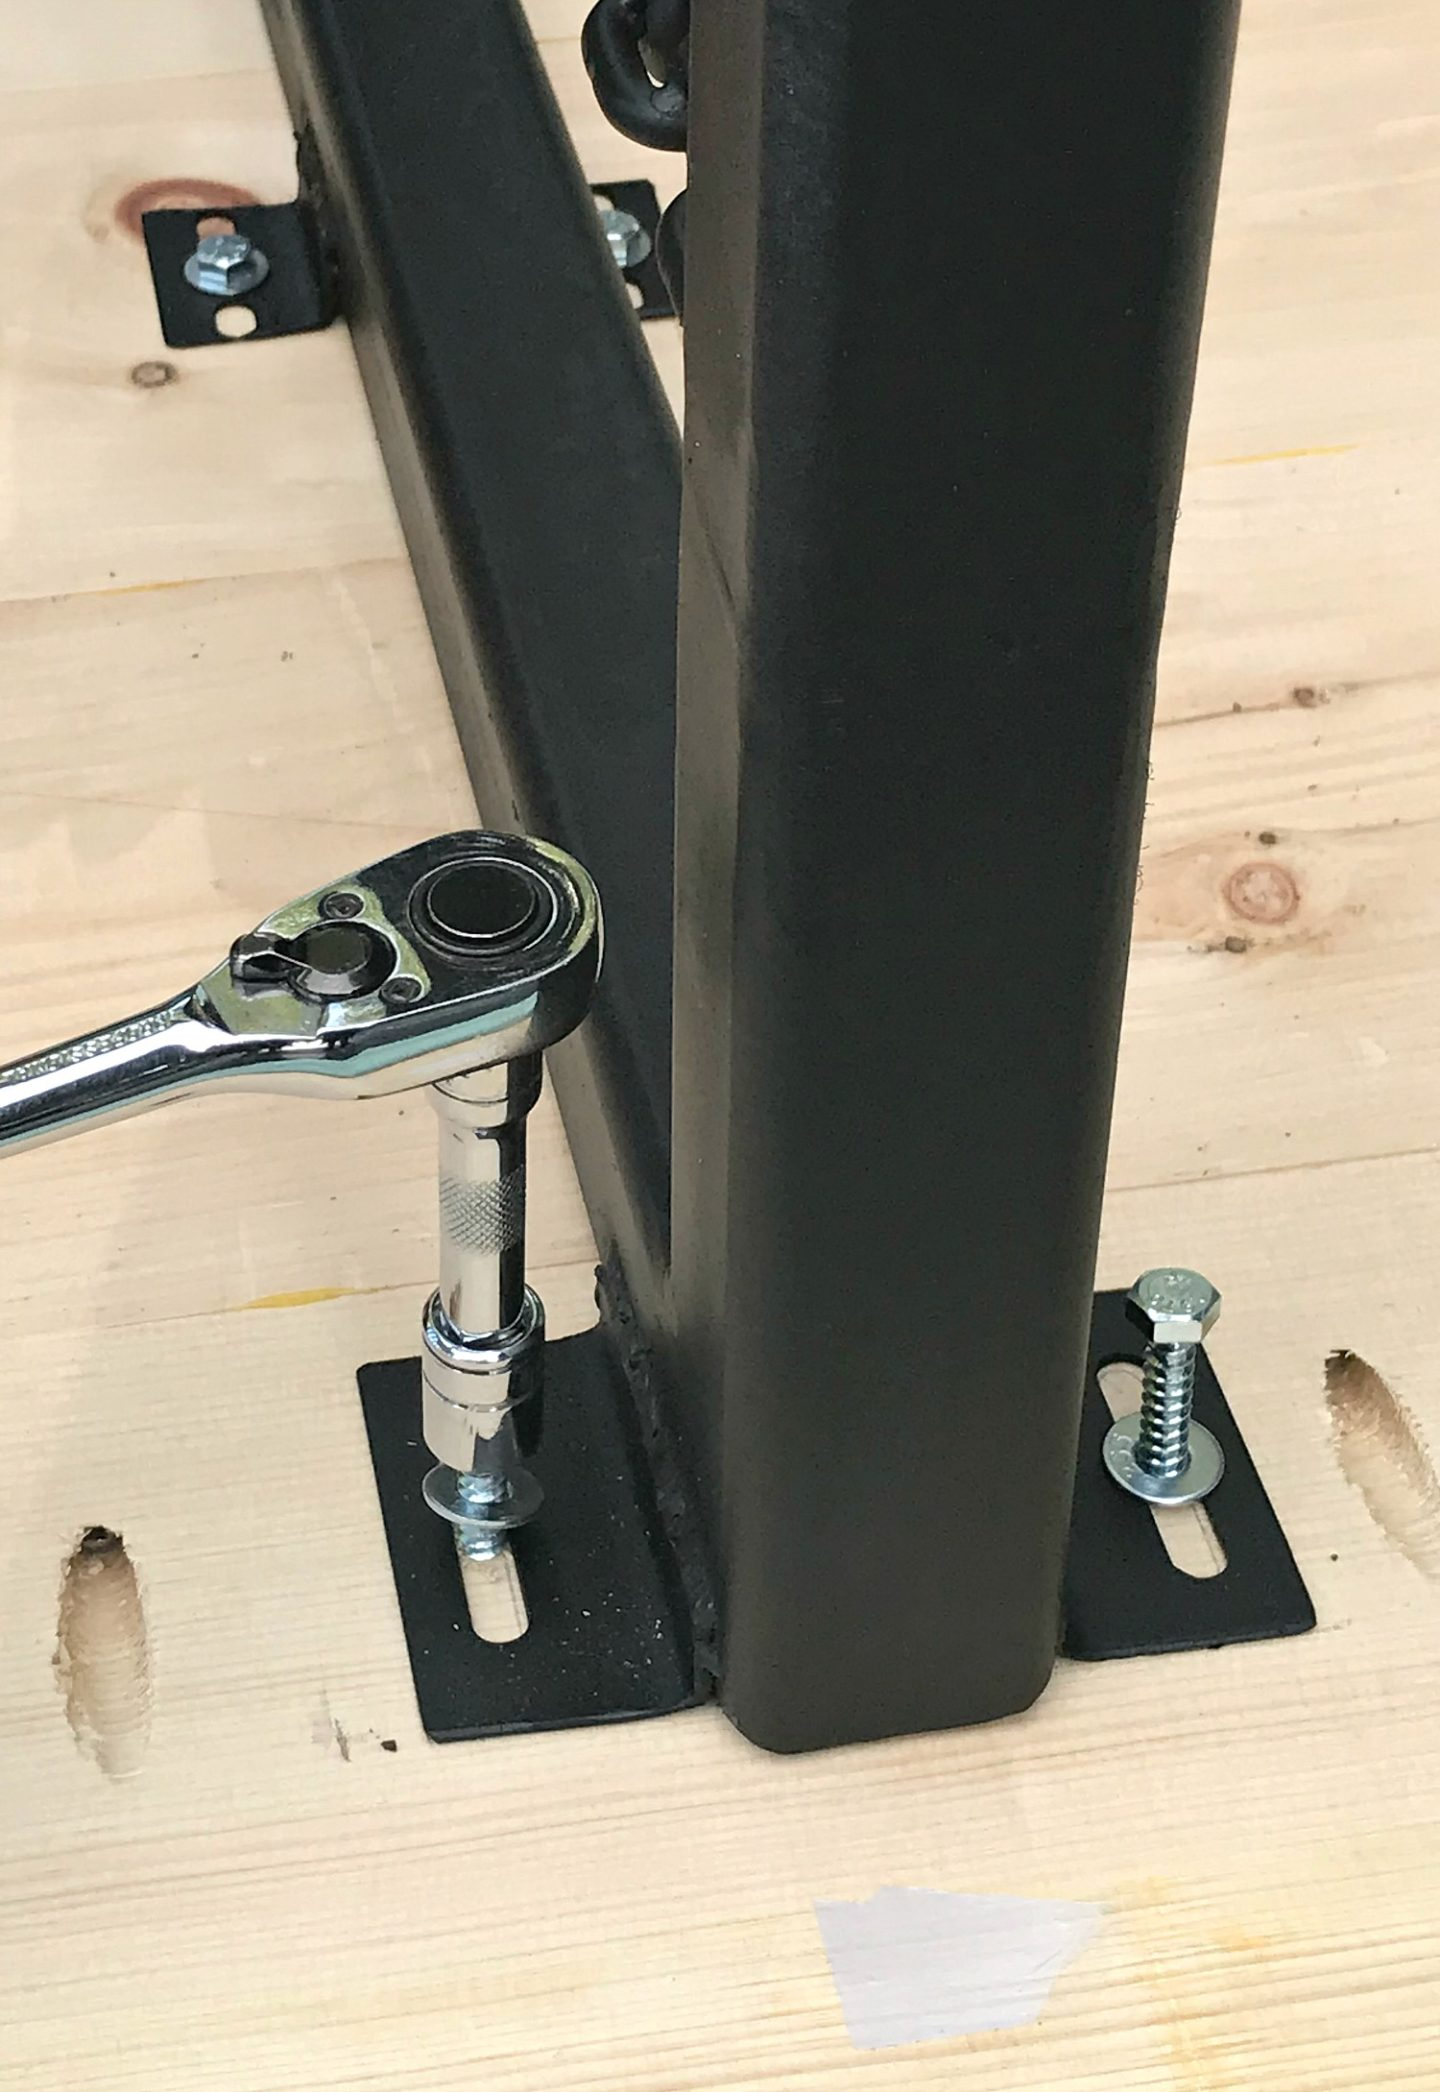 Use Lag Bolts to Attach Heavy Table Top to Heavy Welded Legs